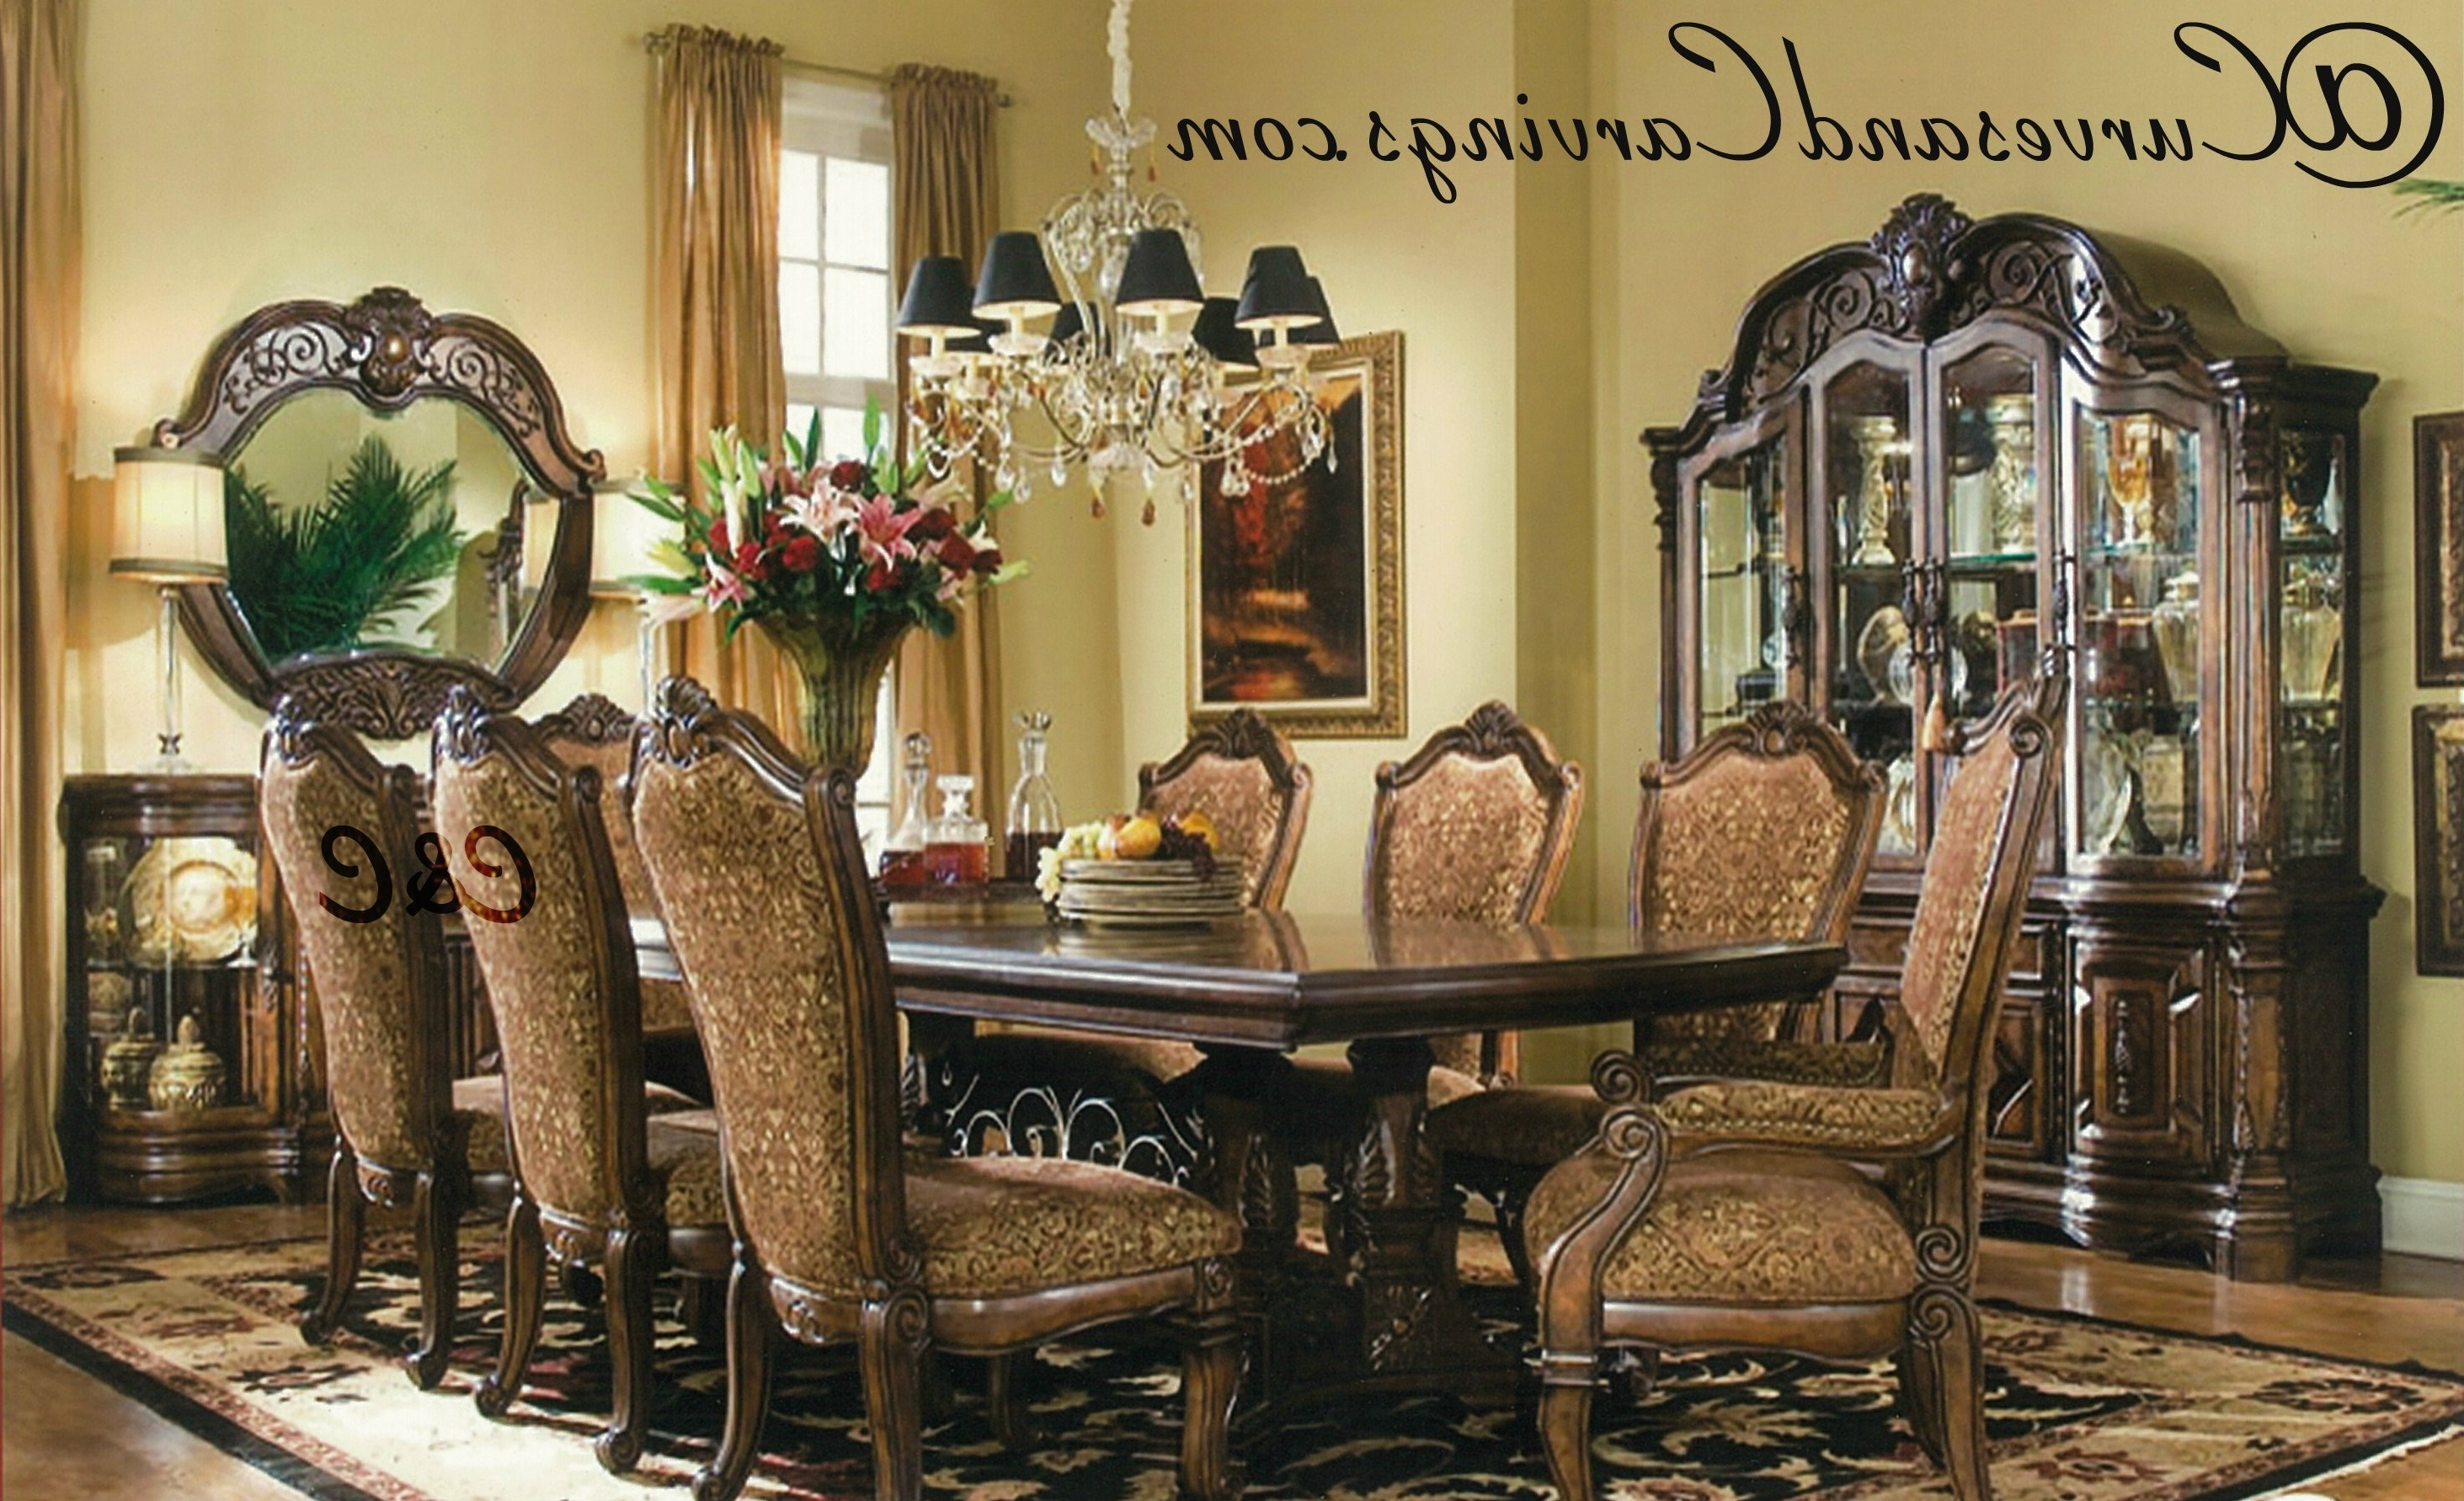 Buy Designer Dining Set 0062 Online In India. Signature Collection Intended For Well Known Indian Dining Room Furniture (Gallery 17 of 25)